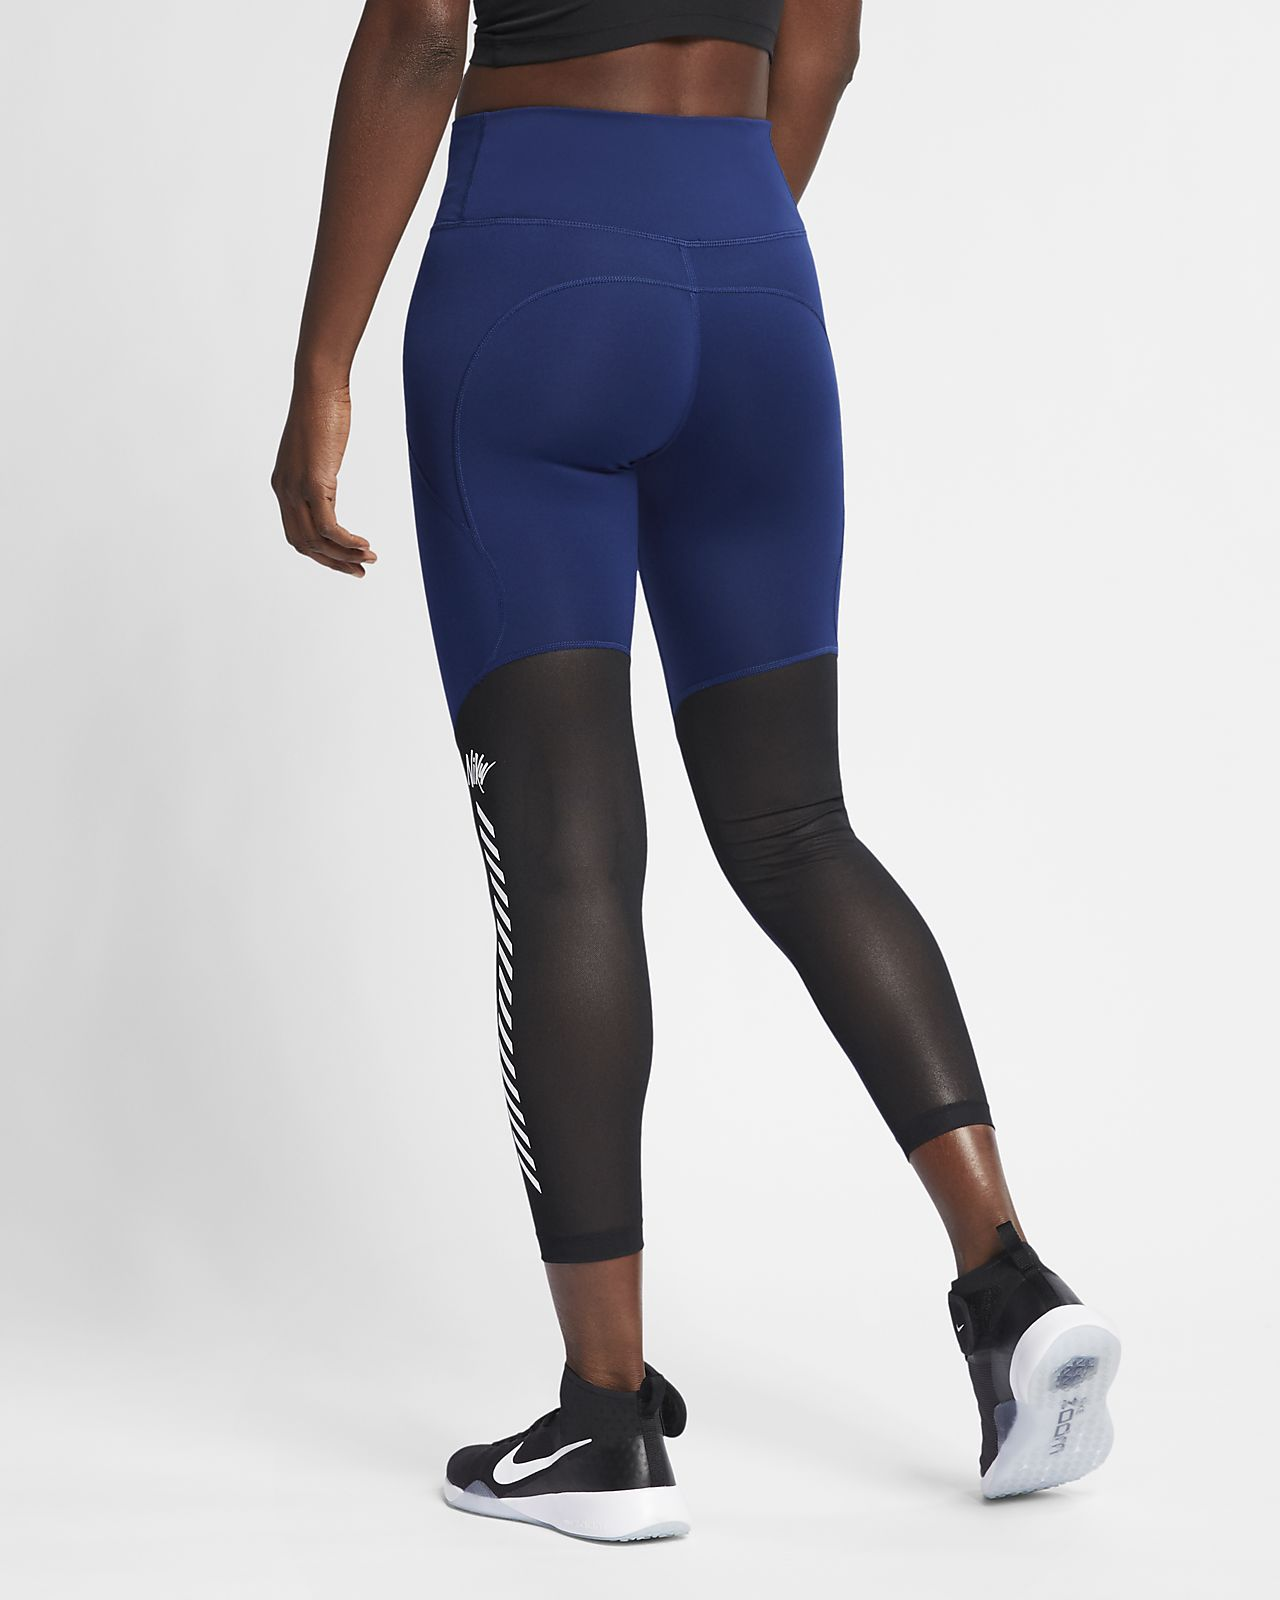 ... Nike One Women's 7/8 Graphic Training Tights